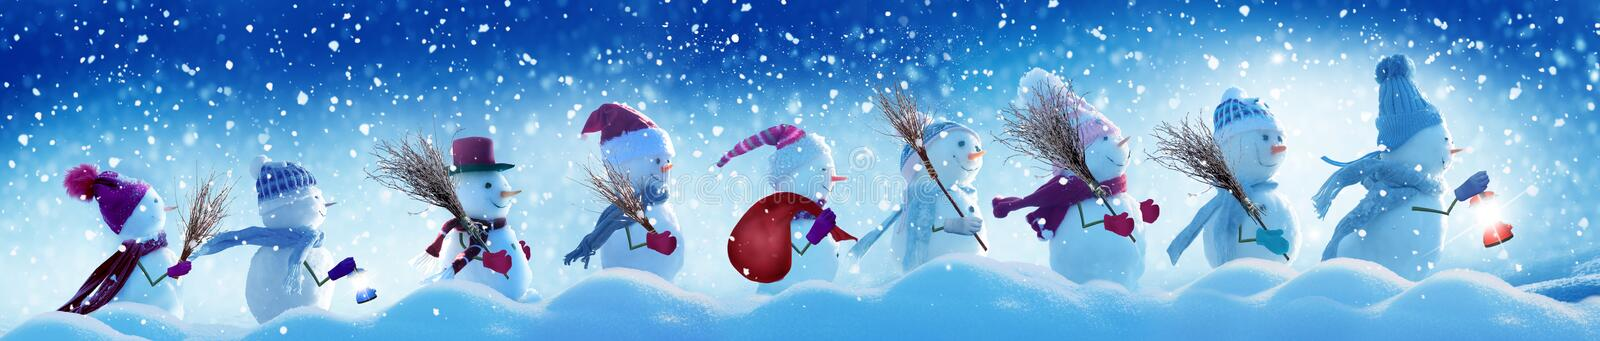 Many snowmen standing in winter Christmas landscape. stock photos